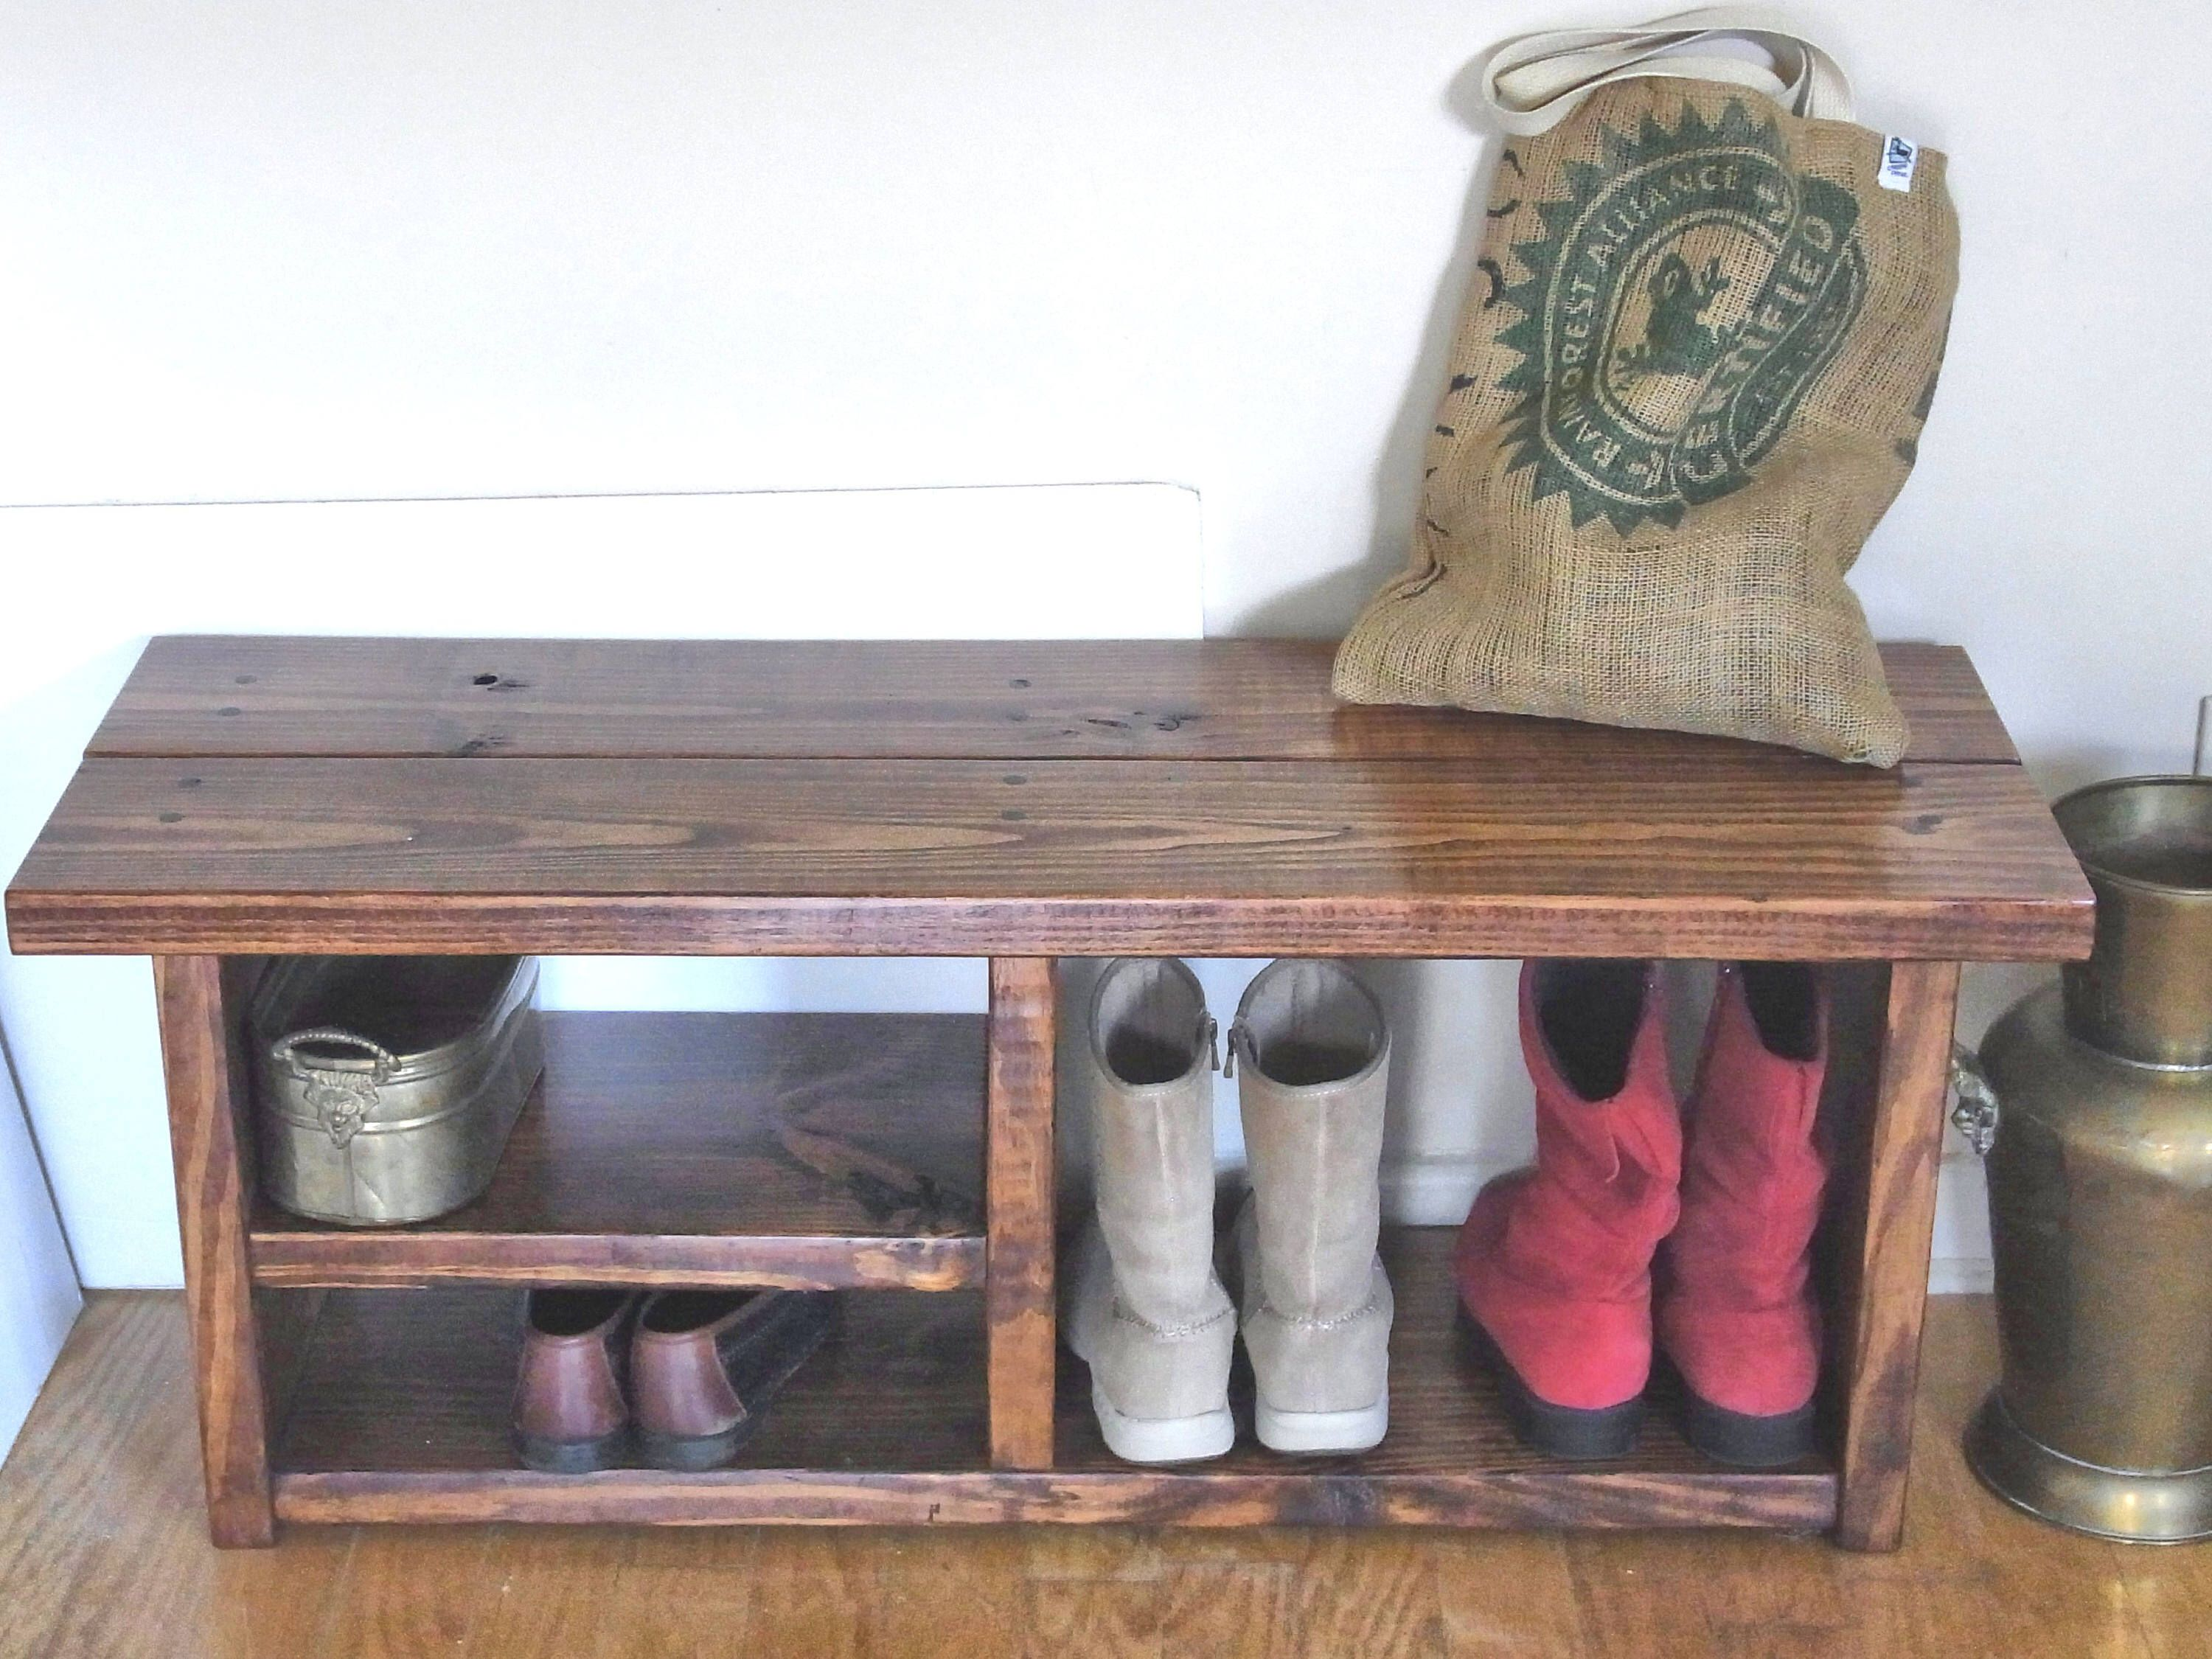 36 Inch Boot Cubby Rustic Bench Shoe Bench Entryway Hallway Mudroom Storage Bench By Dunneswoods On Etsy Https Shoe Bench Entryway Diy Storage Bench Shoe Bench